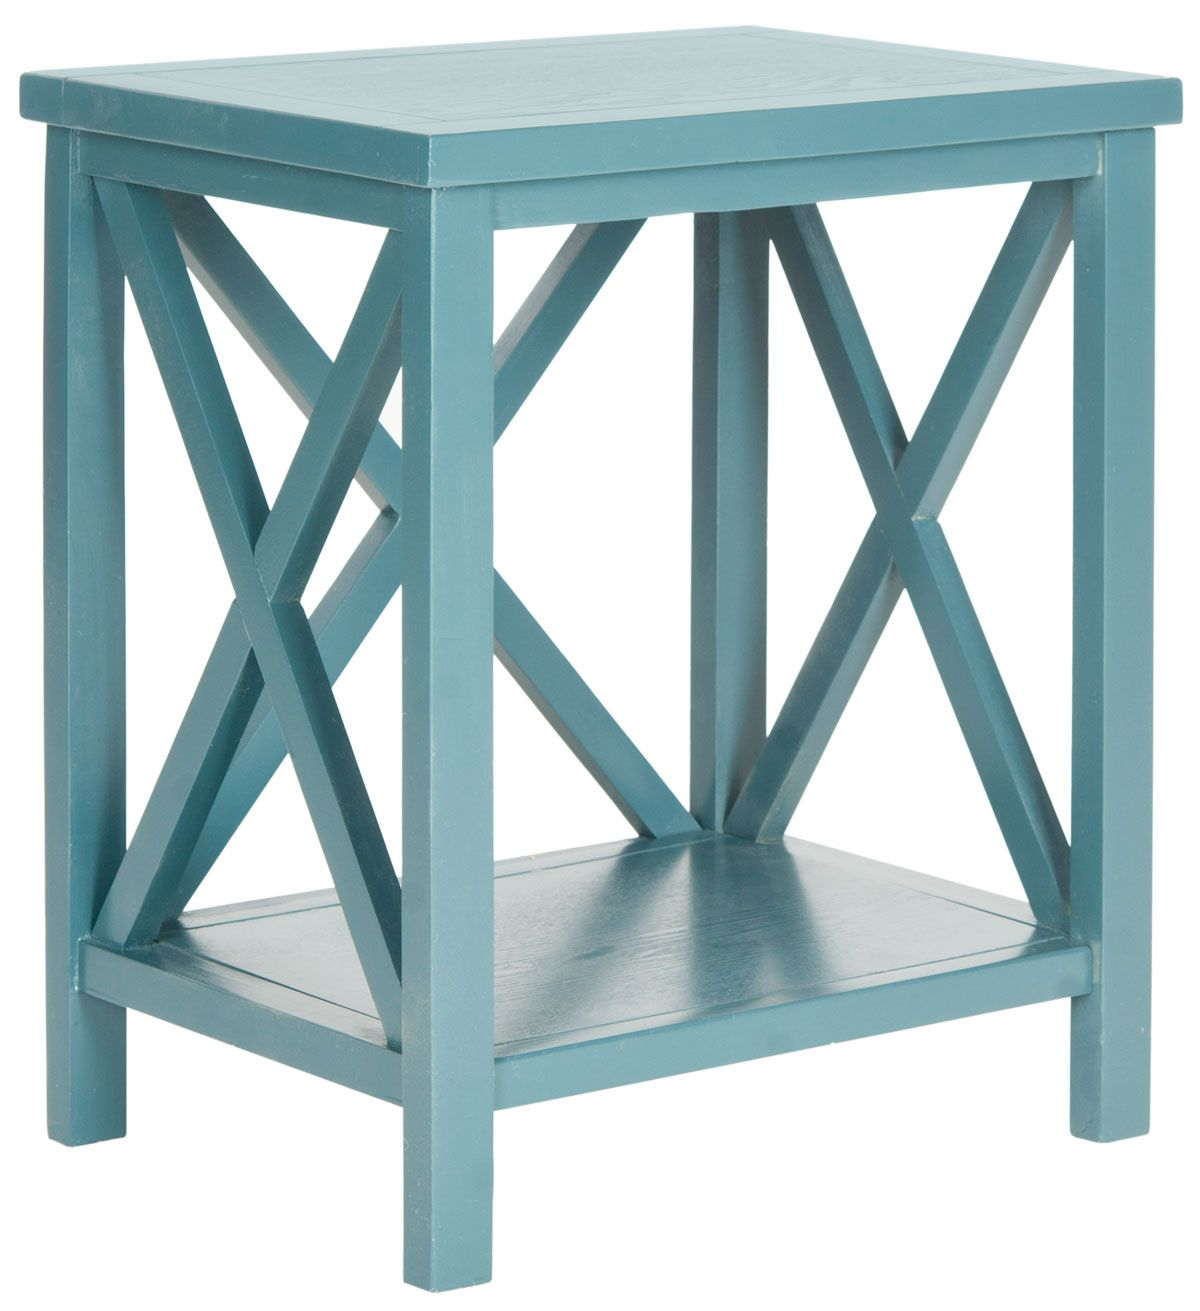 blue accent table ikaittsttt simple inspiration tables storage furniture fretwork related ceramic side cupboards for living room small butler patio bar cover slim ikea wood coffee